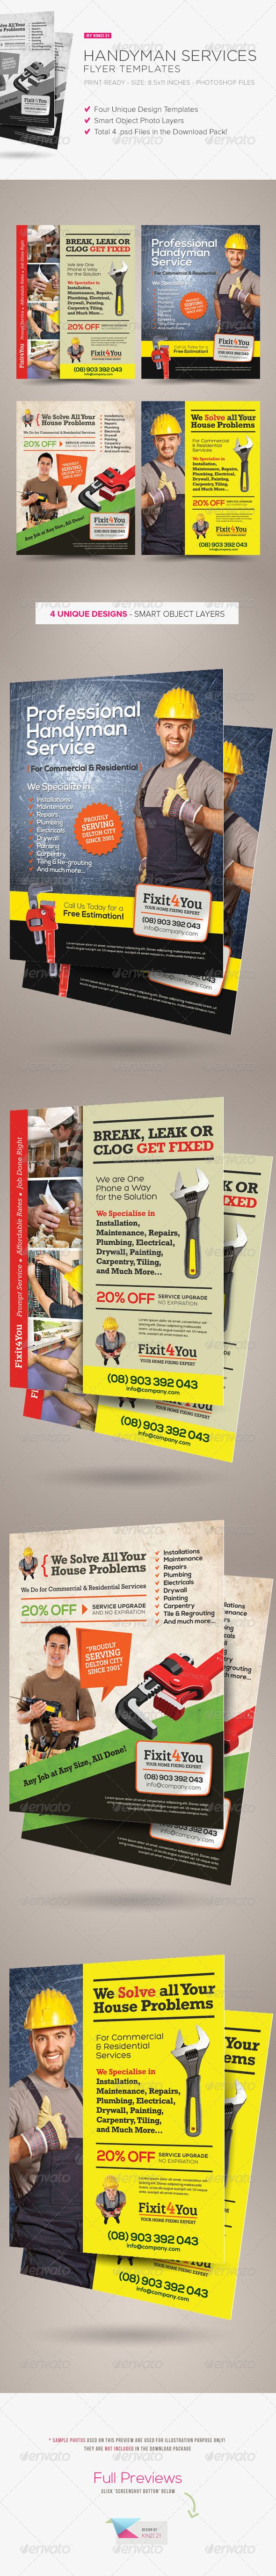 top ideas about handyman service food website top 25 ideas about handyman service food website website layout and website